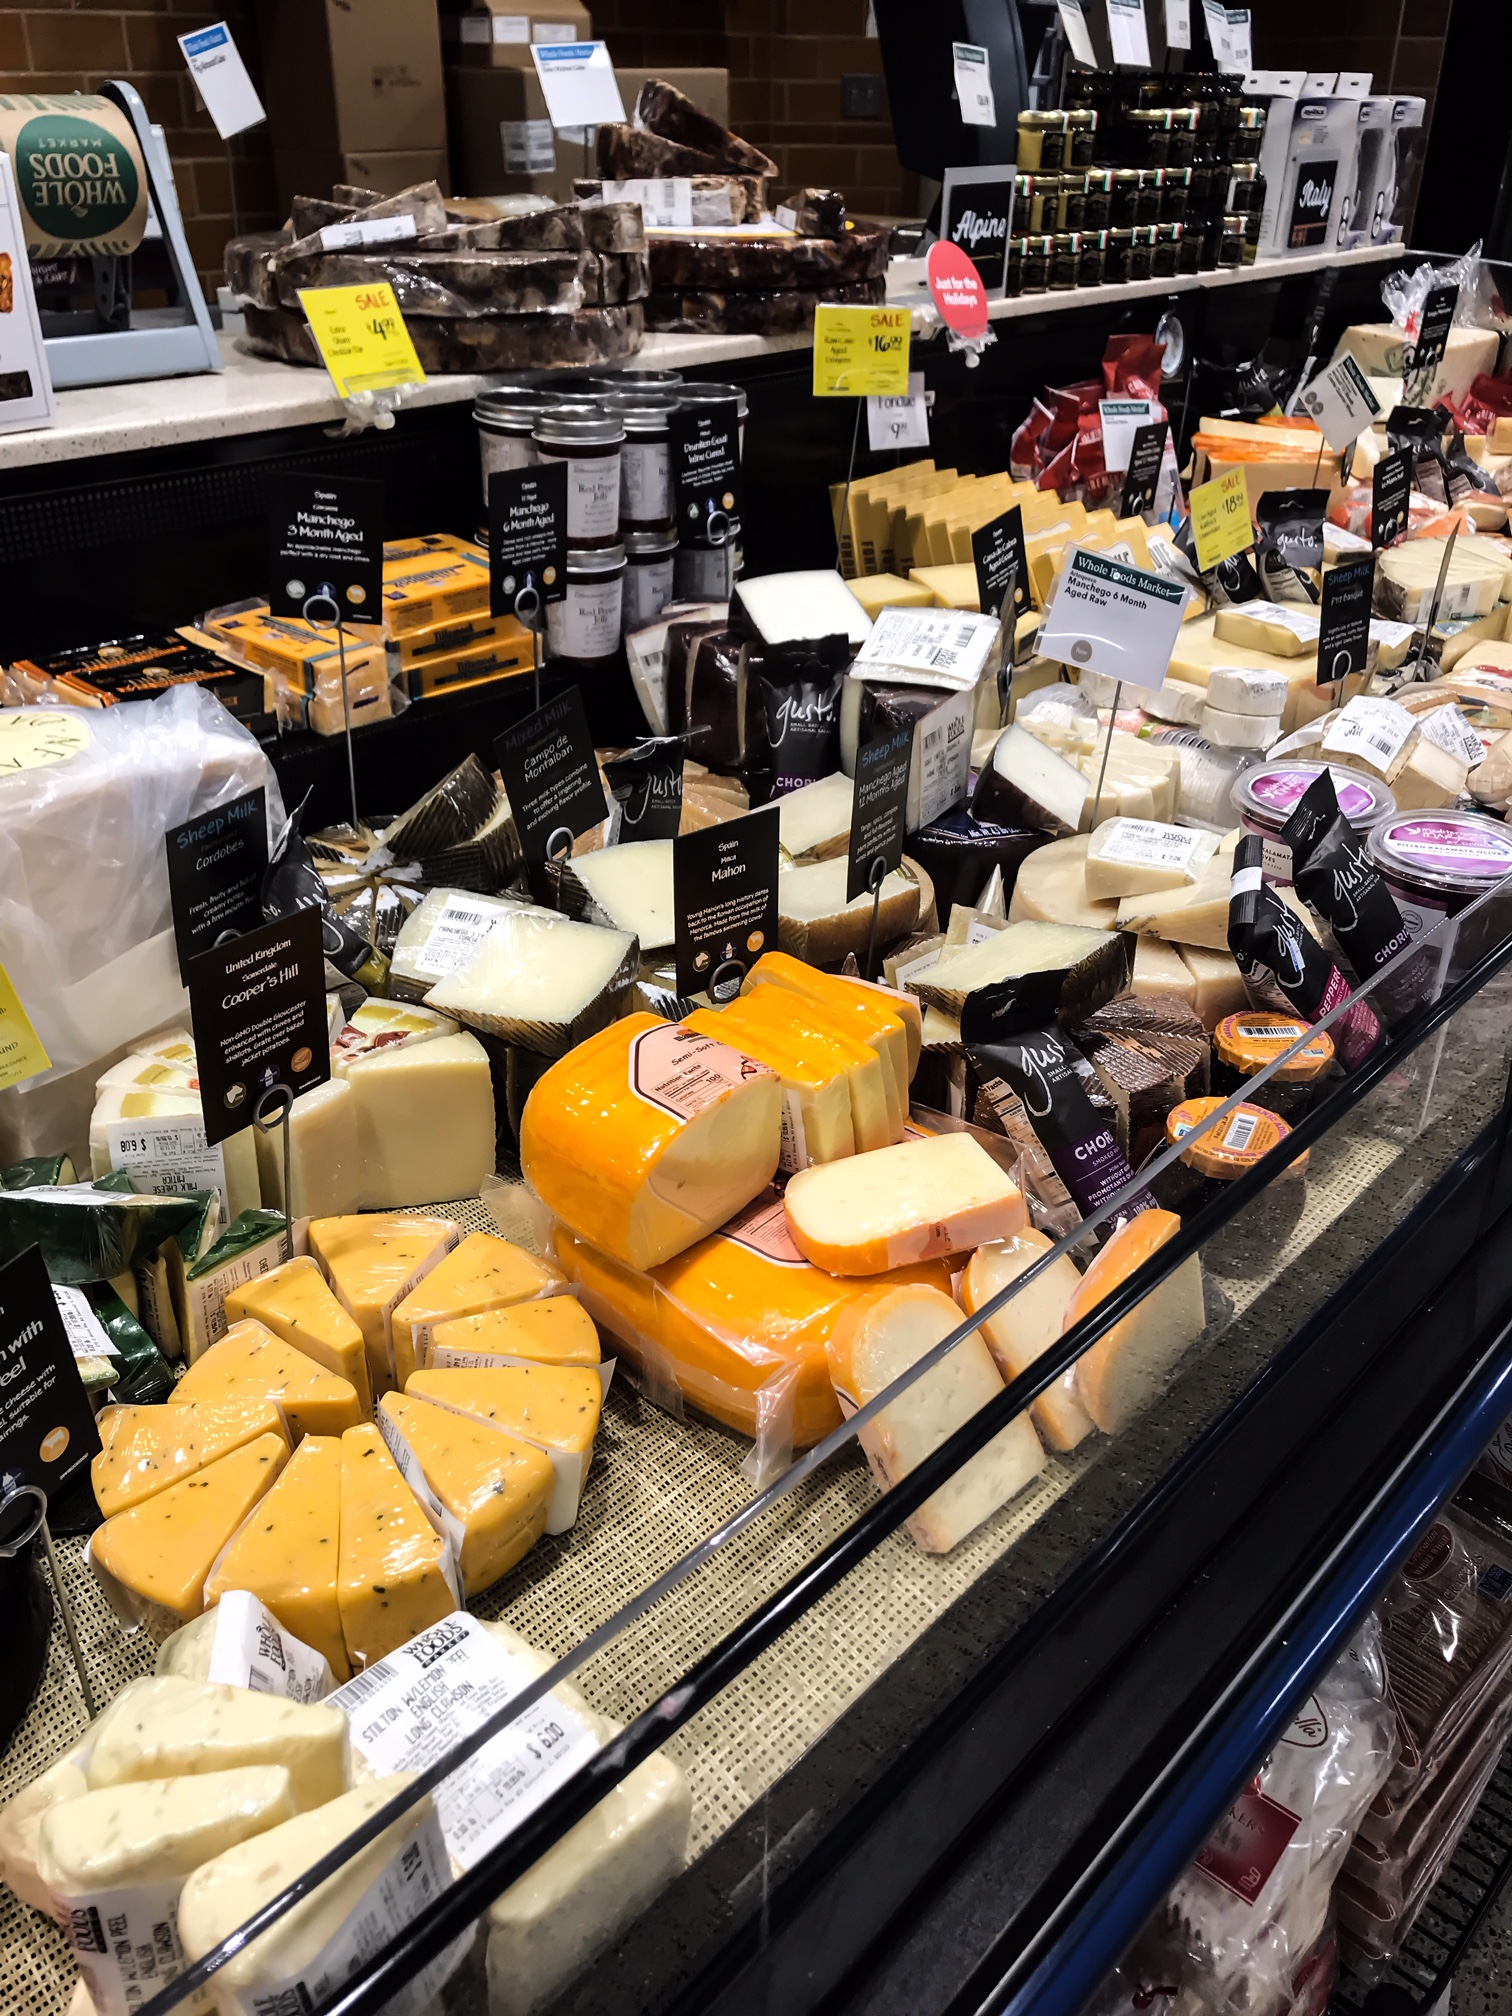 Cheese to buy at Whole Foods Market. Cheese recipe ideas. How To Have A Low Key Fancy New Year's Eve At Home With Your Family. New Year's Eve ideas for kids. How to celebrate the new year at home. New Year's Eve With Kids. Shopping at Whole Foods Market For The Holidays. #sponsored #MakesMeWhole #LowKeyNYE #Whole #Foods